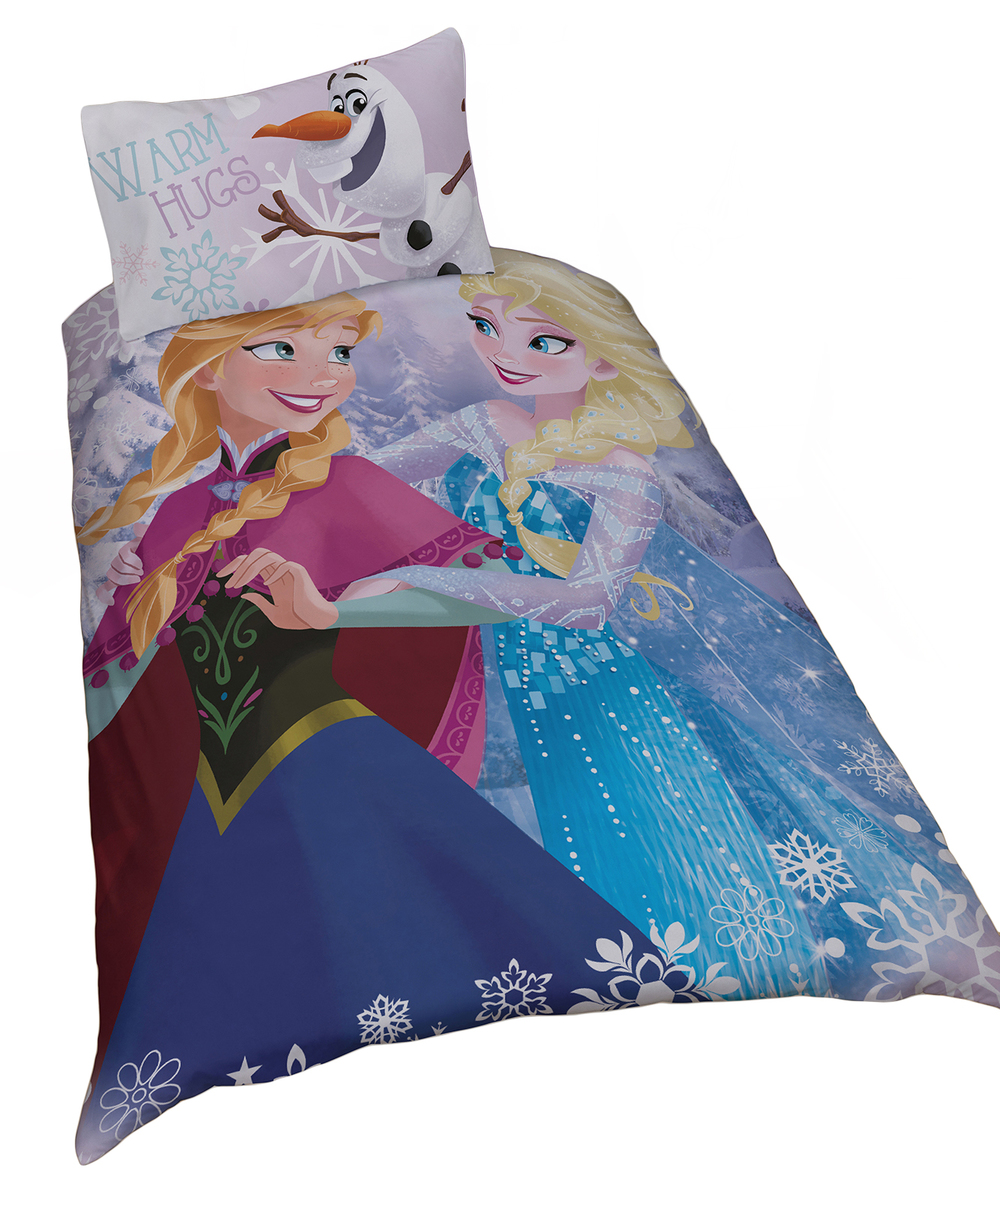 TruffleShuffle_com_Single_Disney_Frozen_Crystal_Elsa_Anna_And_Olaf_Duvet_Cover_Set_29_99_hi_res.jpg